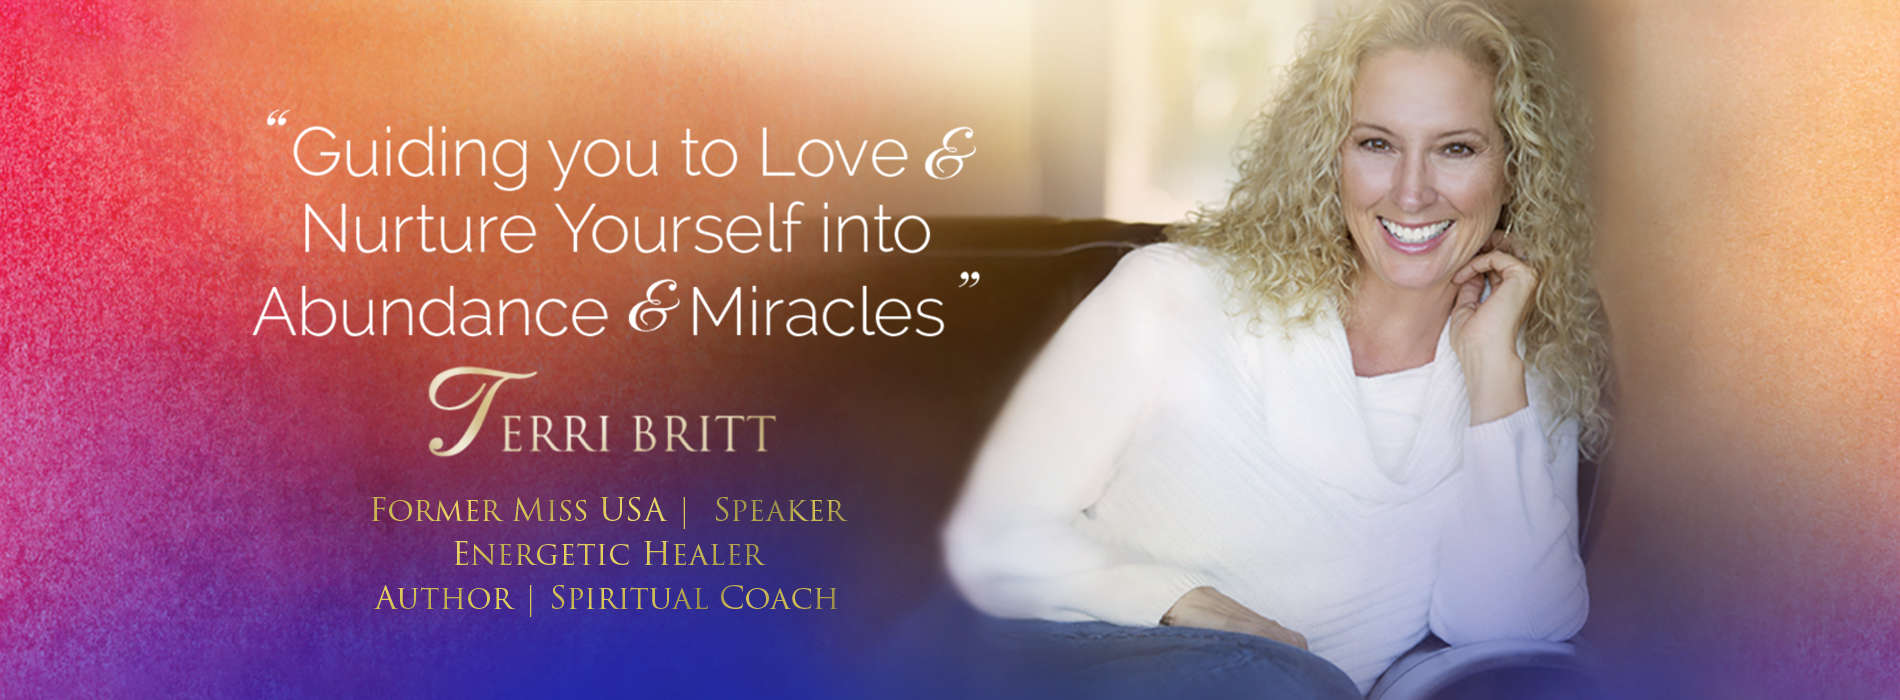 Terri Britt: Inspirational Speaker, Life Coach, Award Winning Author and Former Miss USA